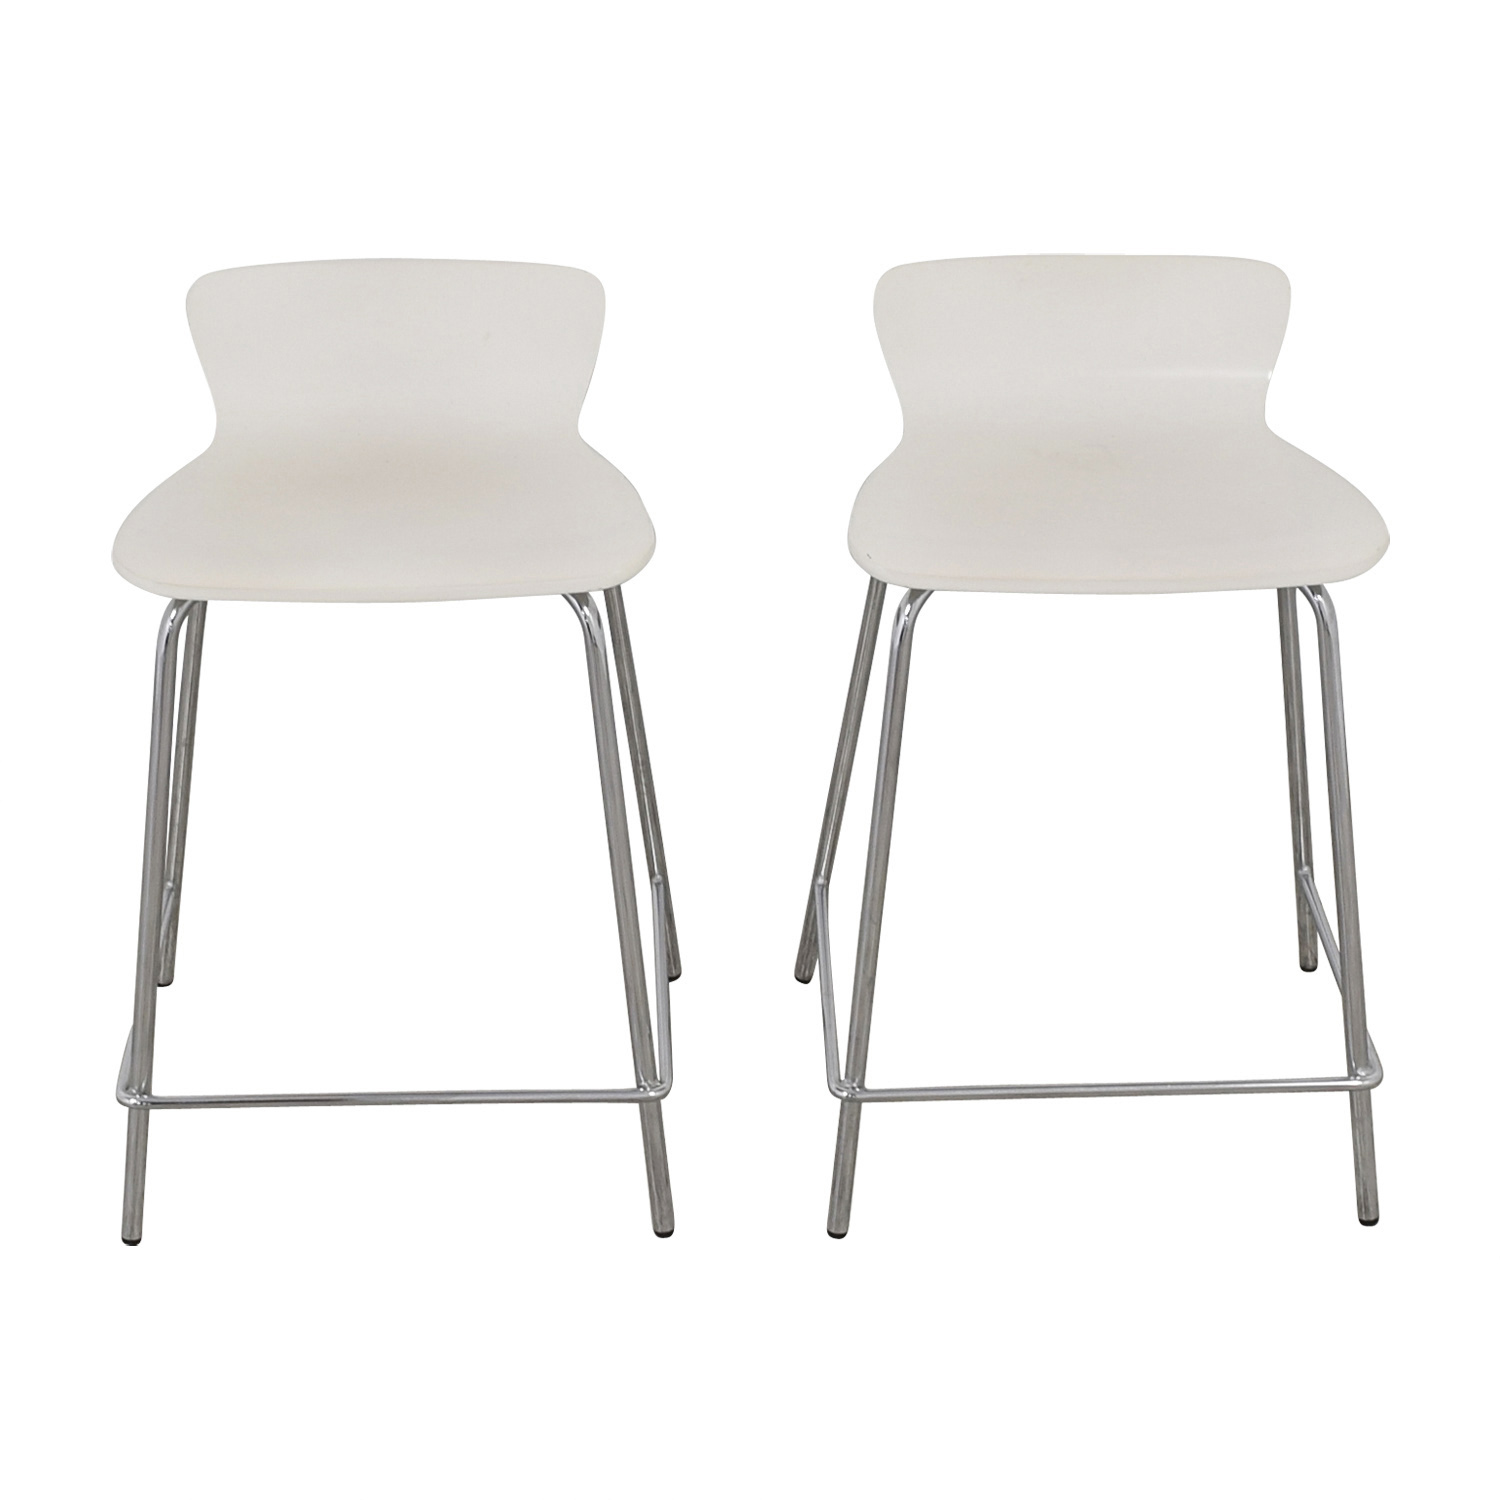 Crate and Barrel Crate and Barrel Felix White Counter Stools dimensions